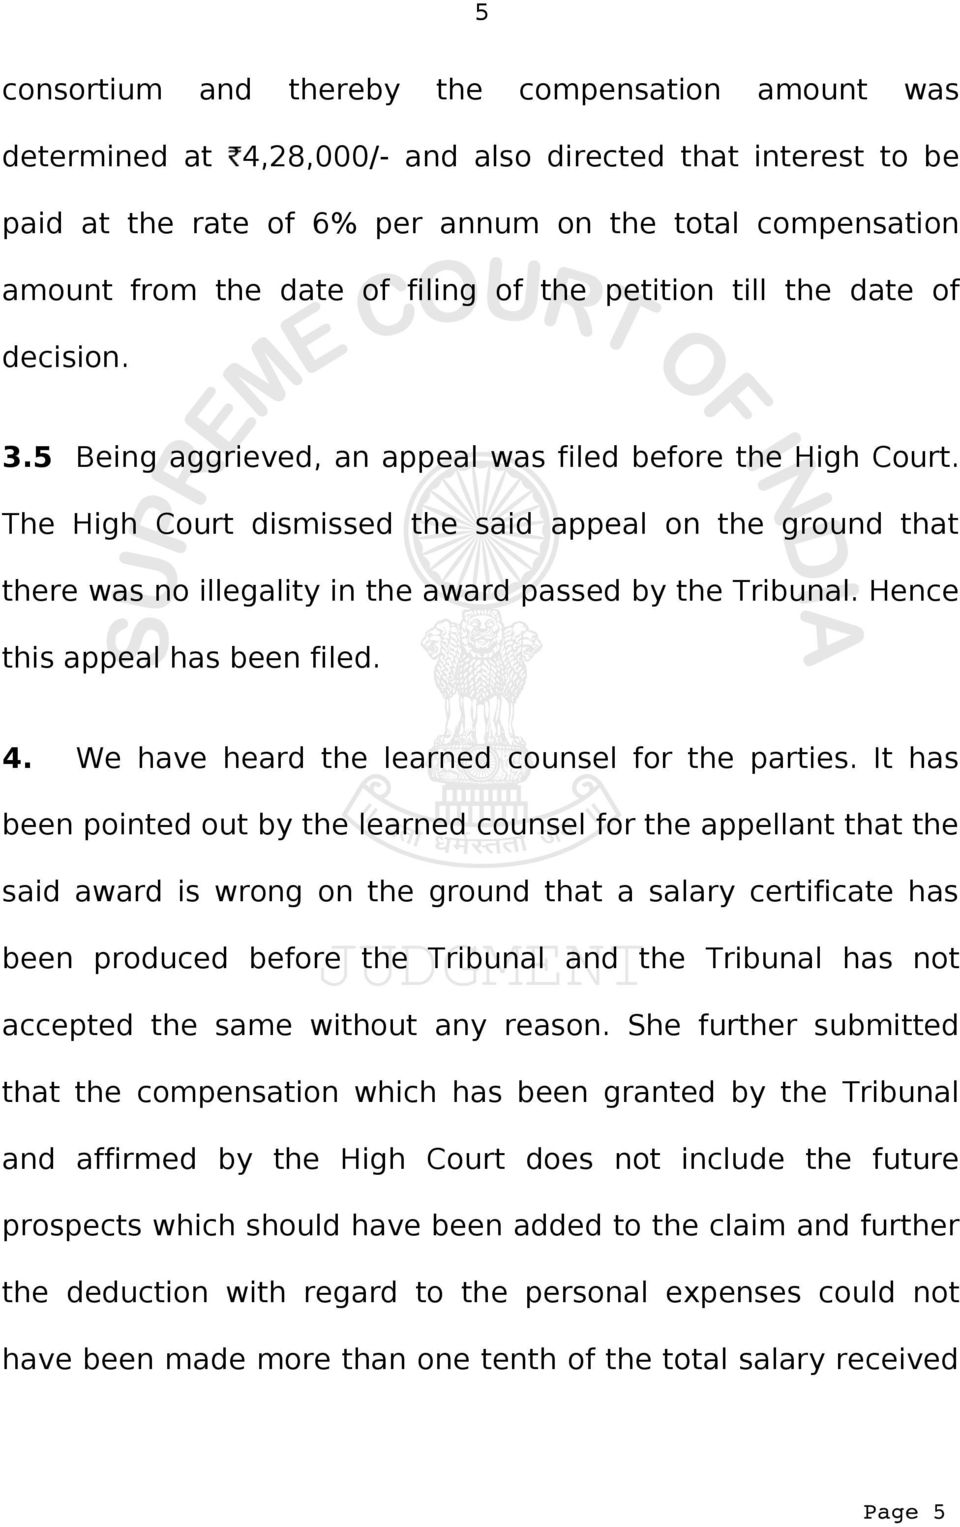 The High Court dismissed the said appeal on the ground that there was no illegality in the award passed by the Tribunal. Hence this appeal has been filed. 4.